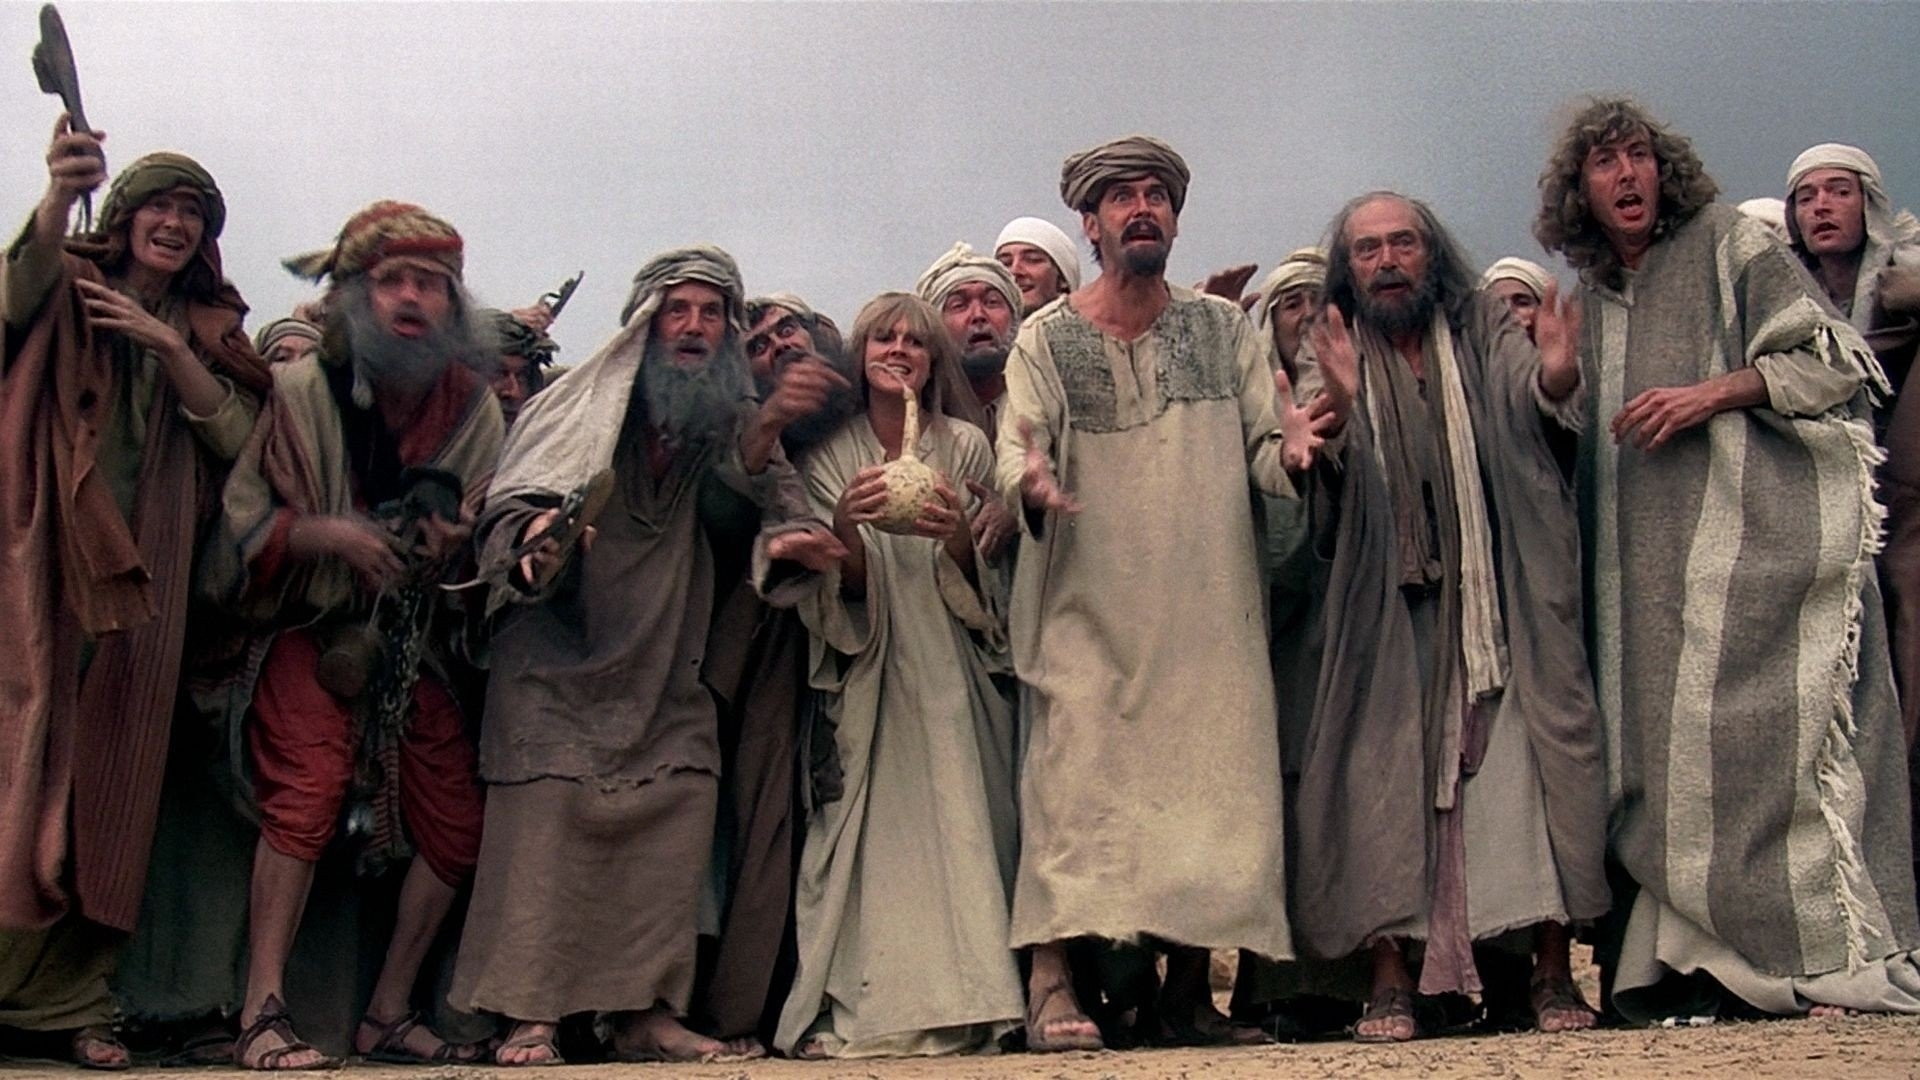 #20) Life of Brian - (1979 - dir. Terry Jones)